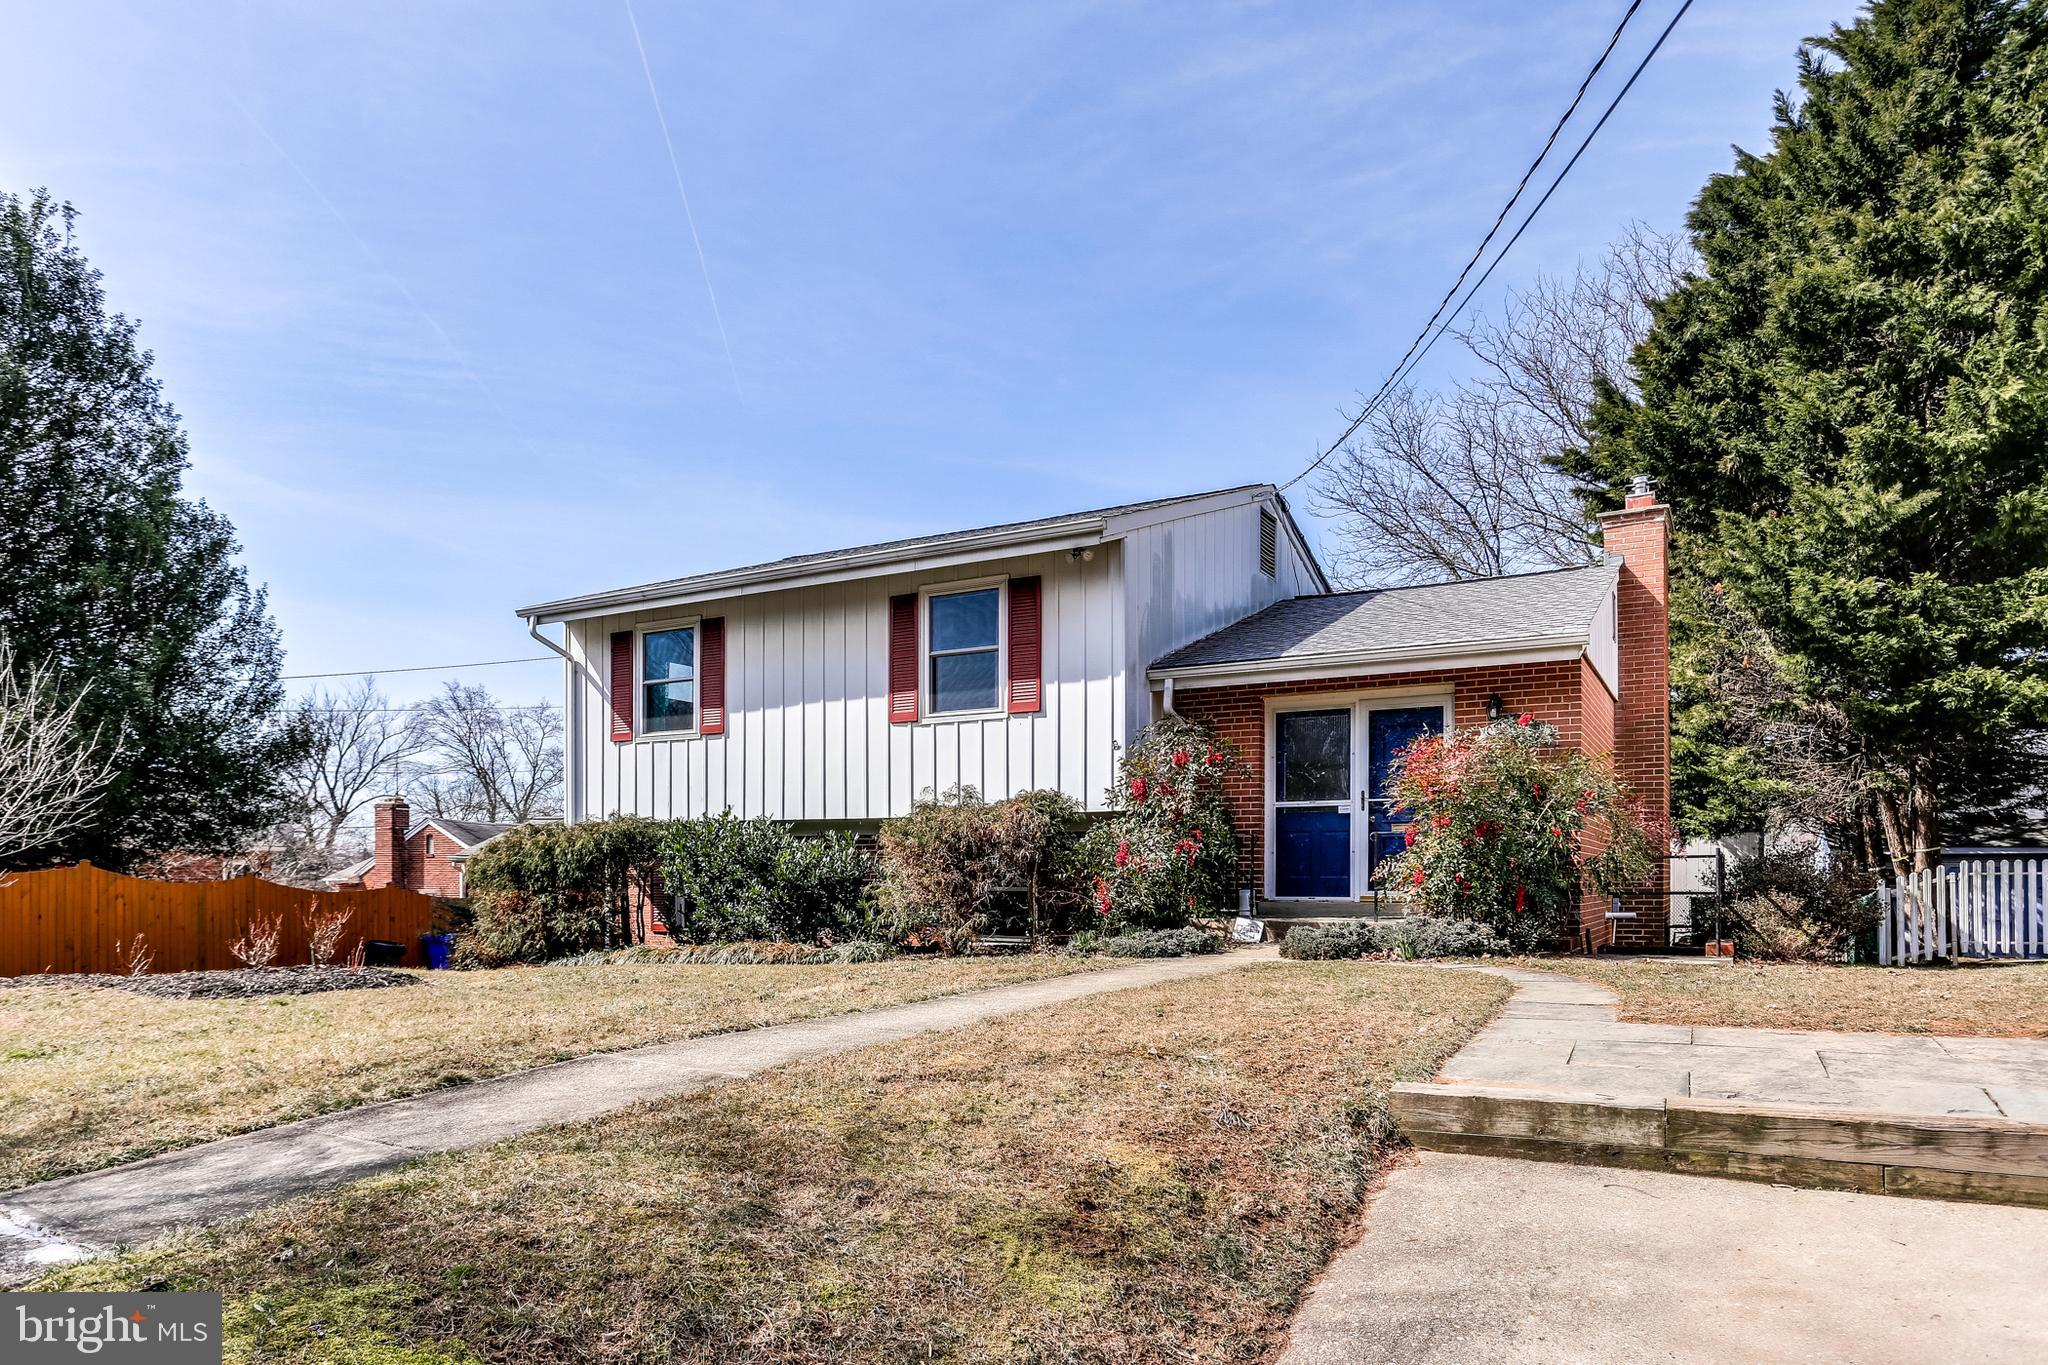 10704 HUNTLEY AVENUE, SILVER SPRING, MD 20902